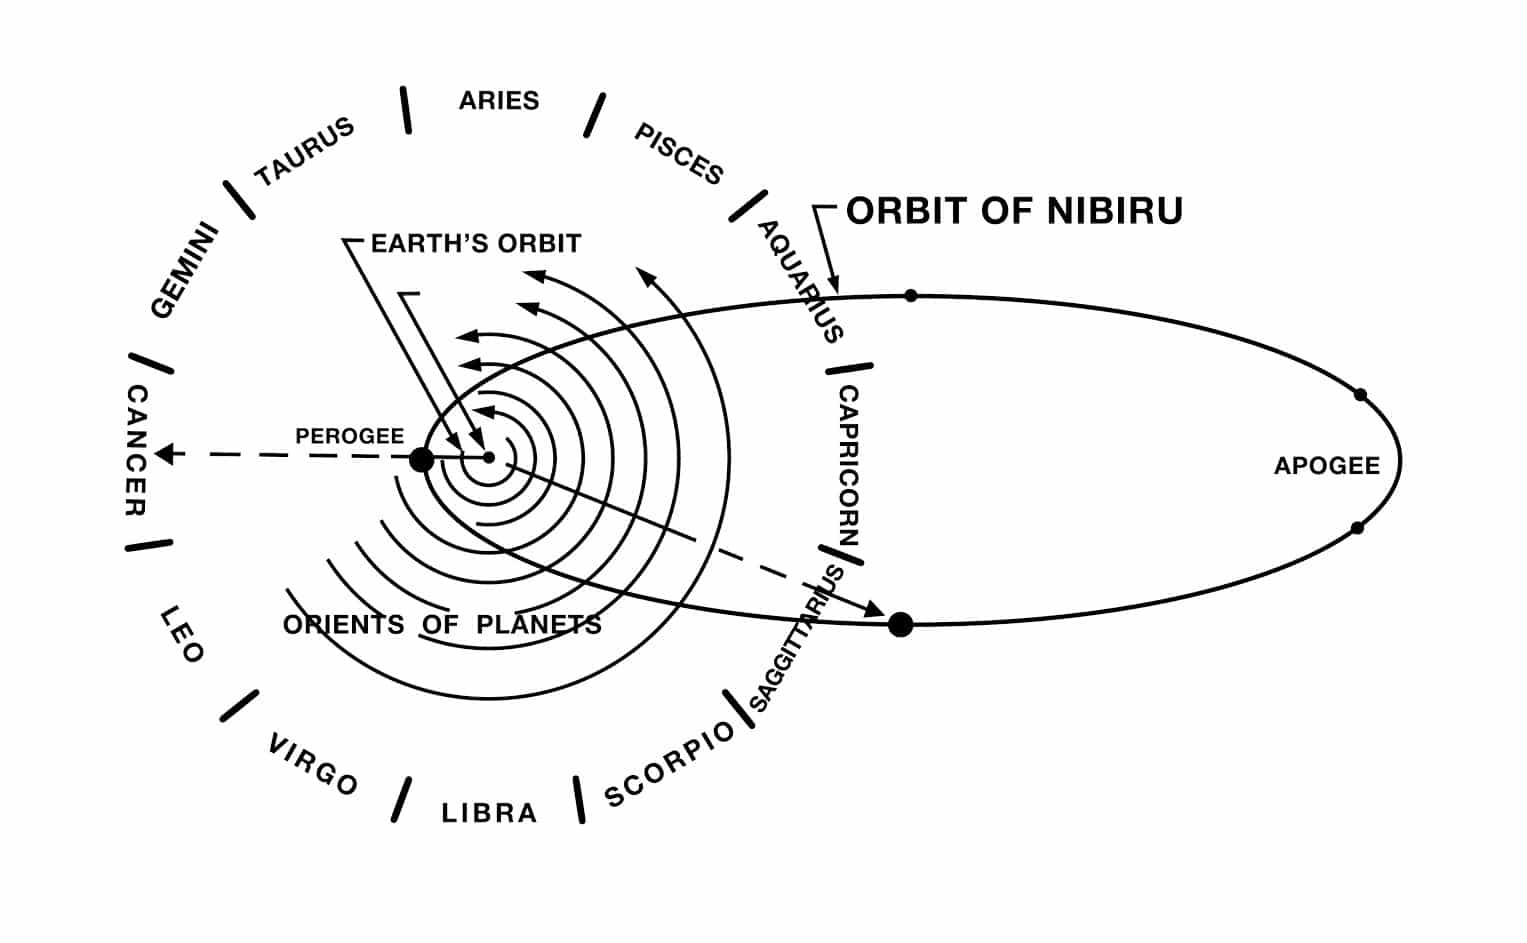 venus in solar system with nibiru location - photo #35